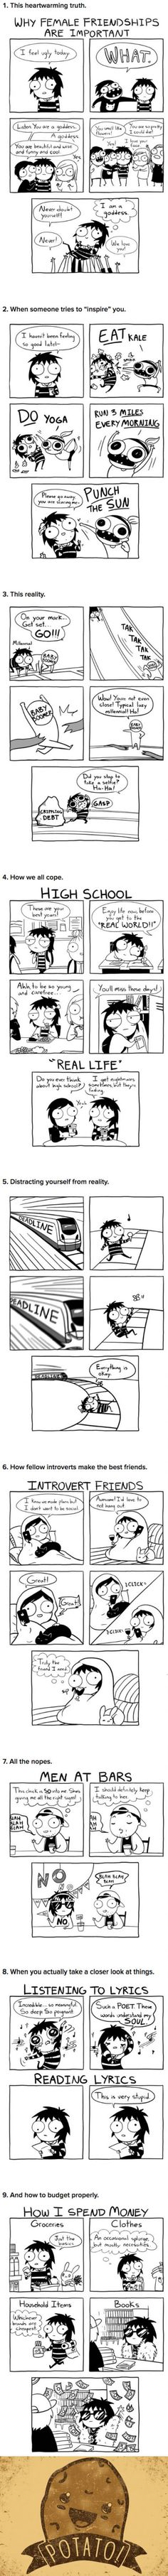 9 Comics That Are So Relatable It Hurts (Sarah Andersen)